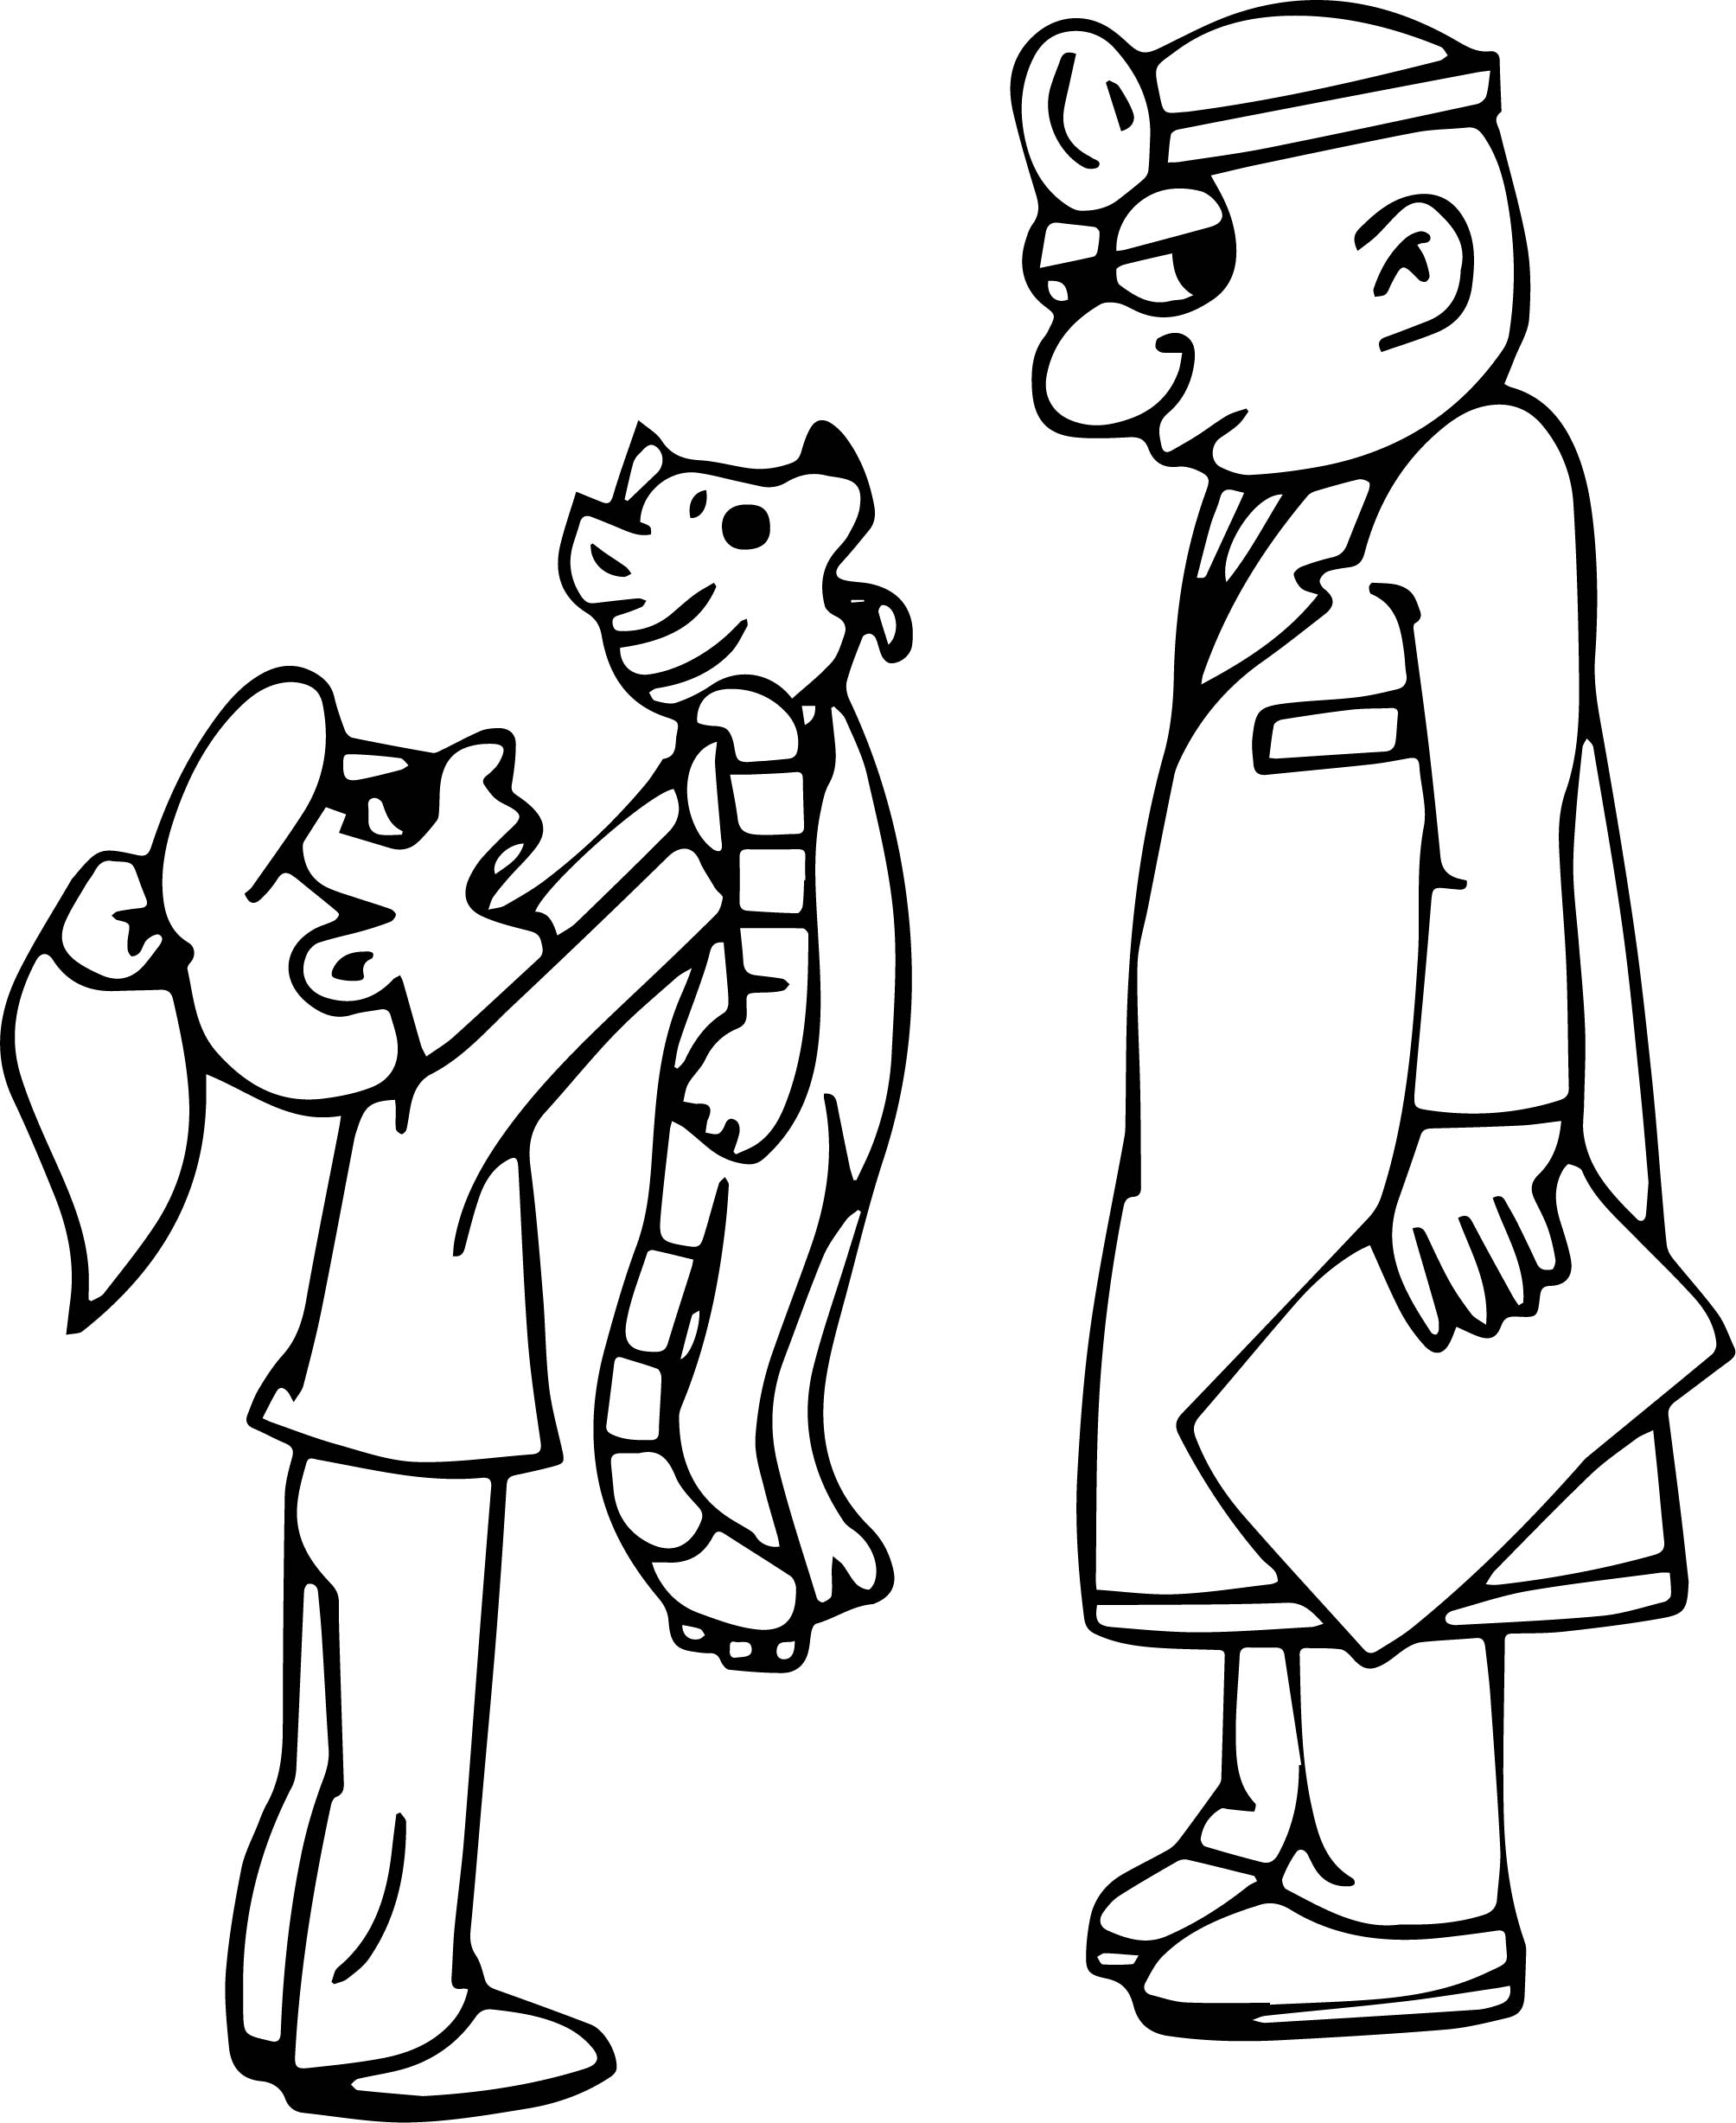 pediatrician veterinarian kid and cat coloring page